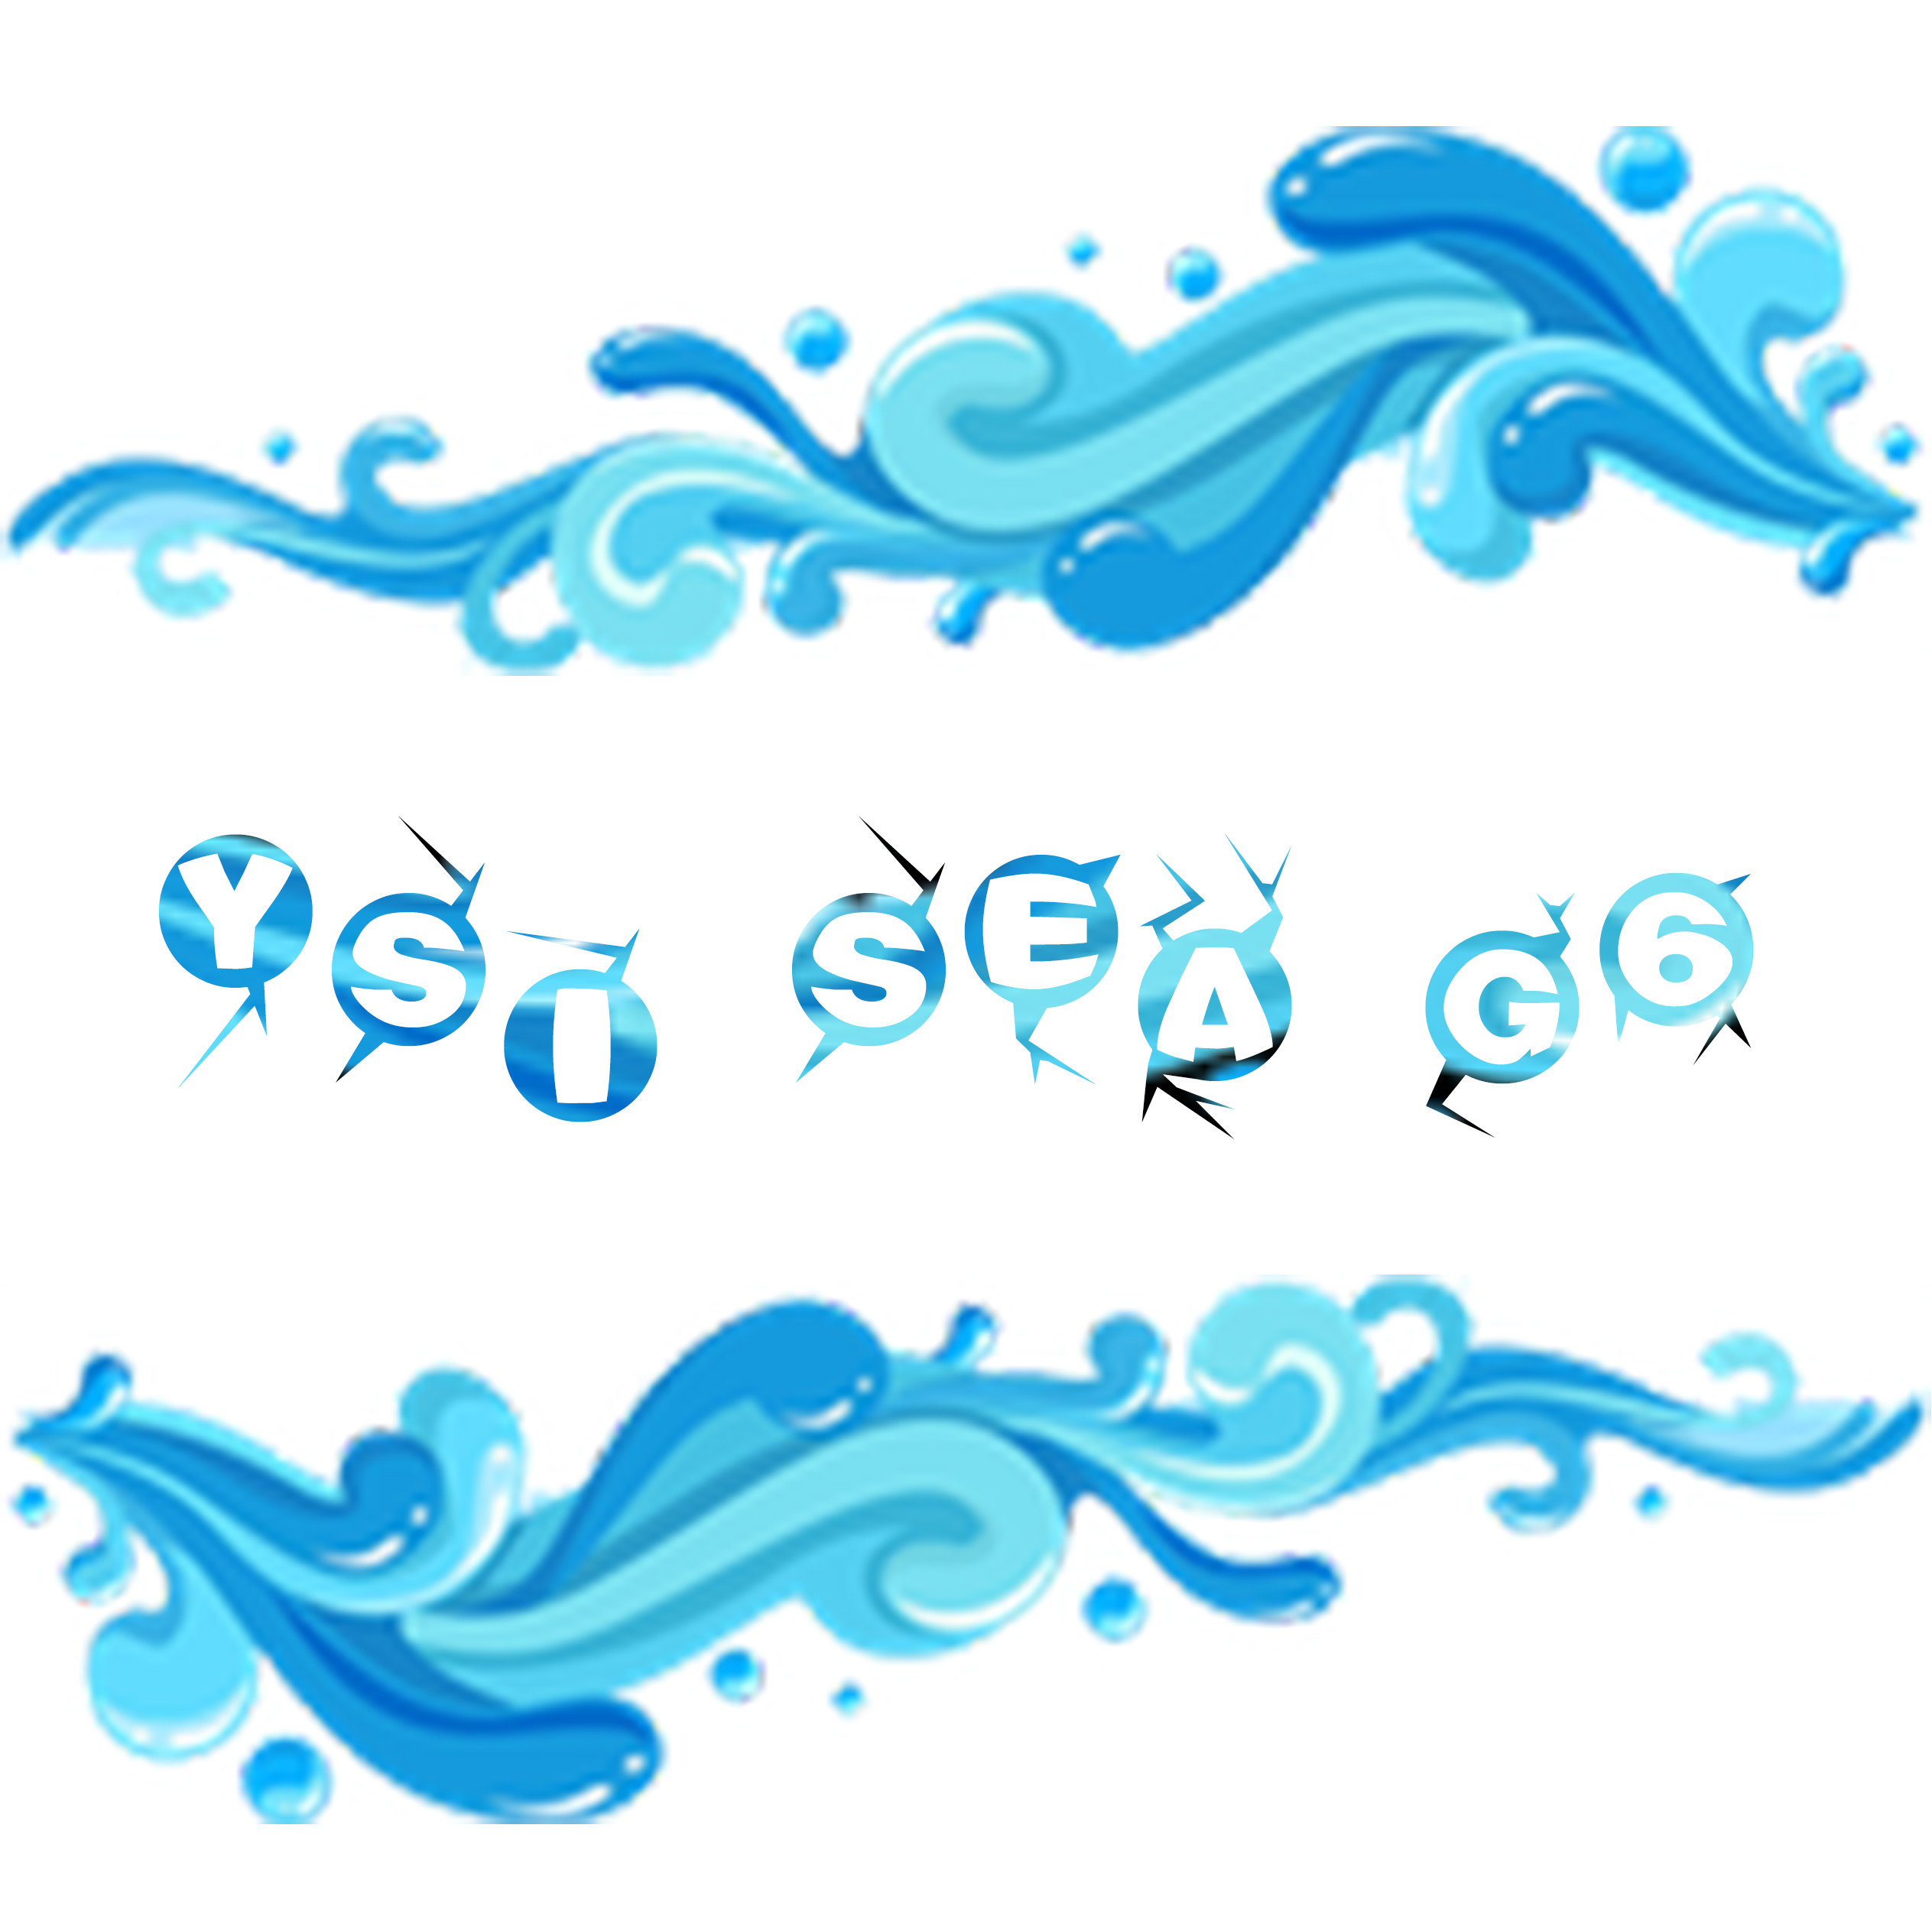 Ysi sea g6 logo